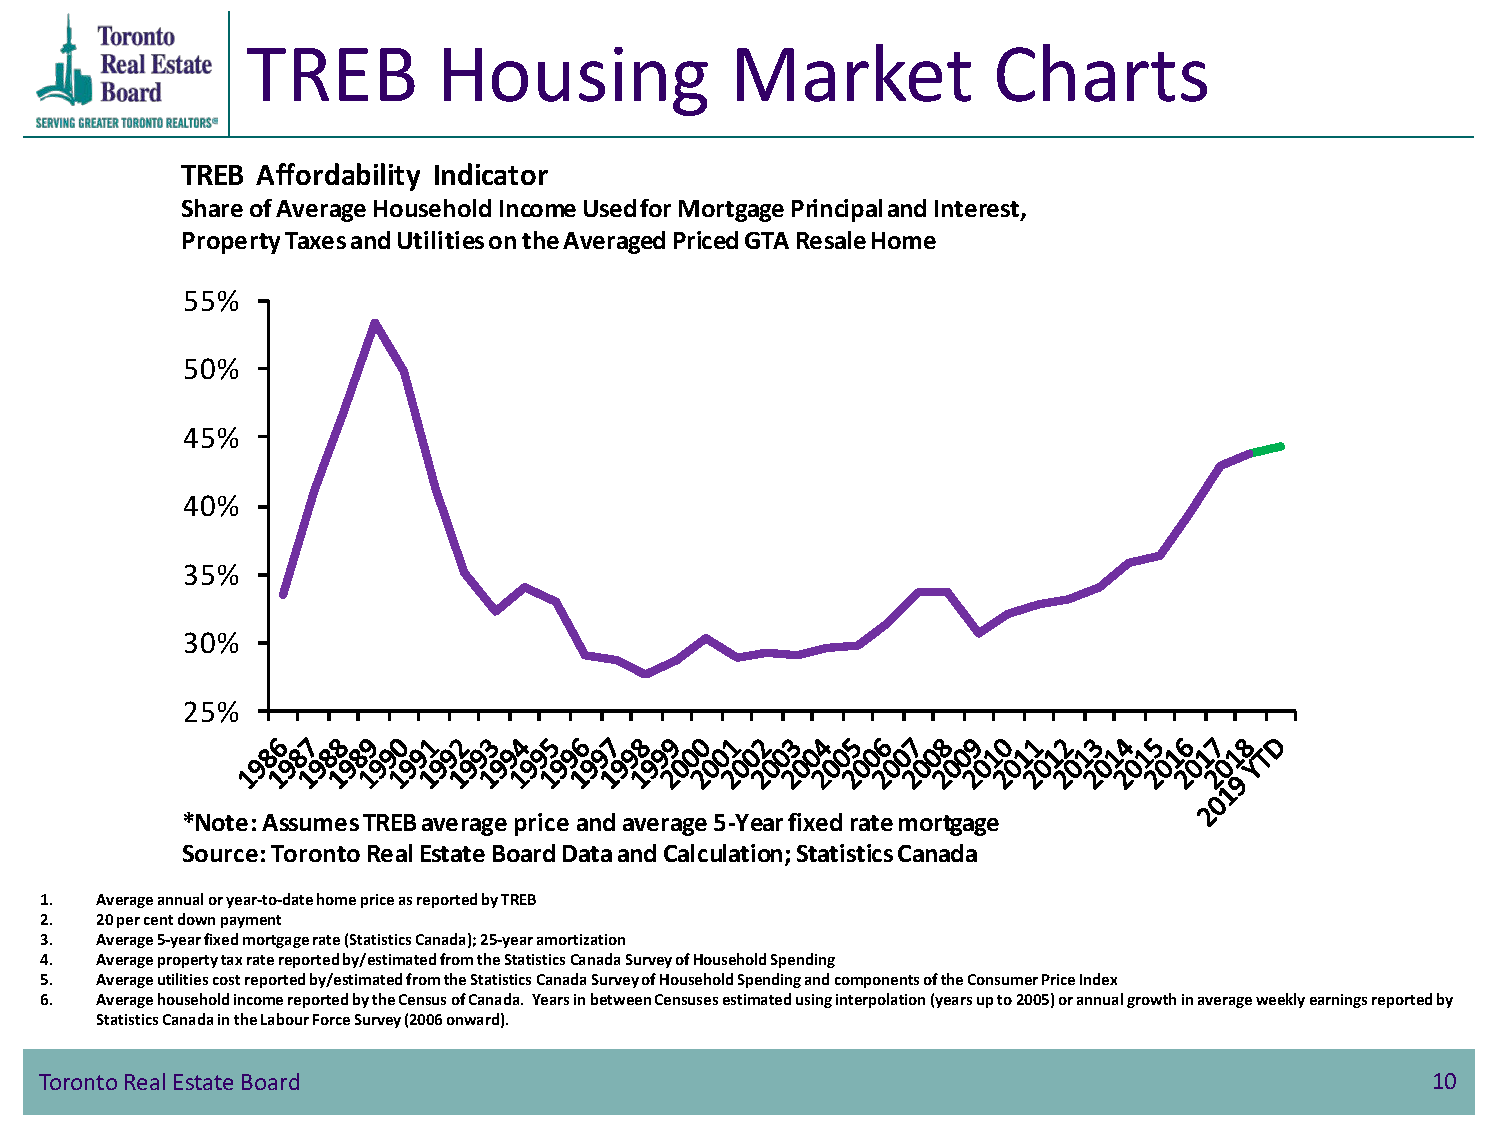 TREB Housing Market Charts - TREB Affordability Indicator